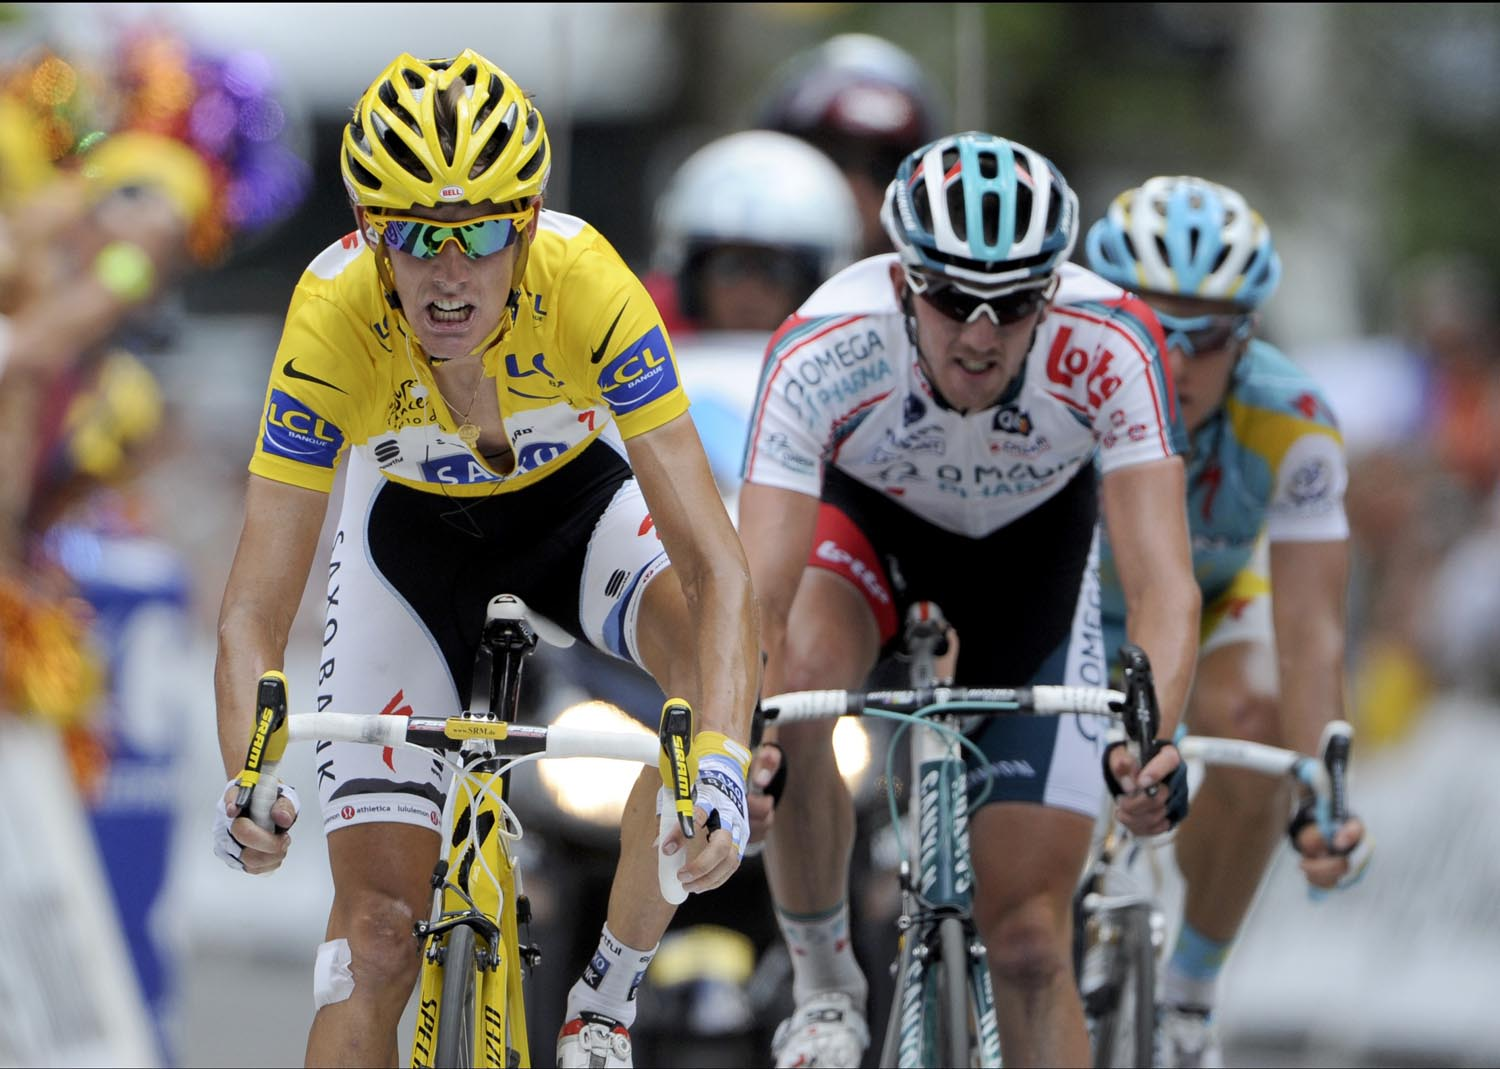 Andy Schleck finishes, Tour de France 2010, stage 15